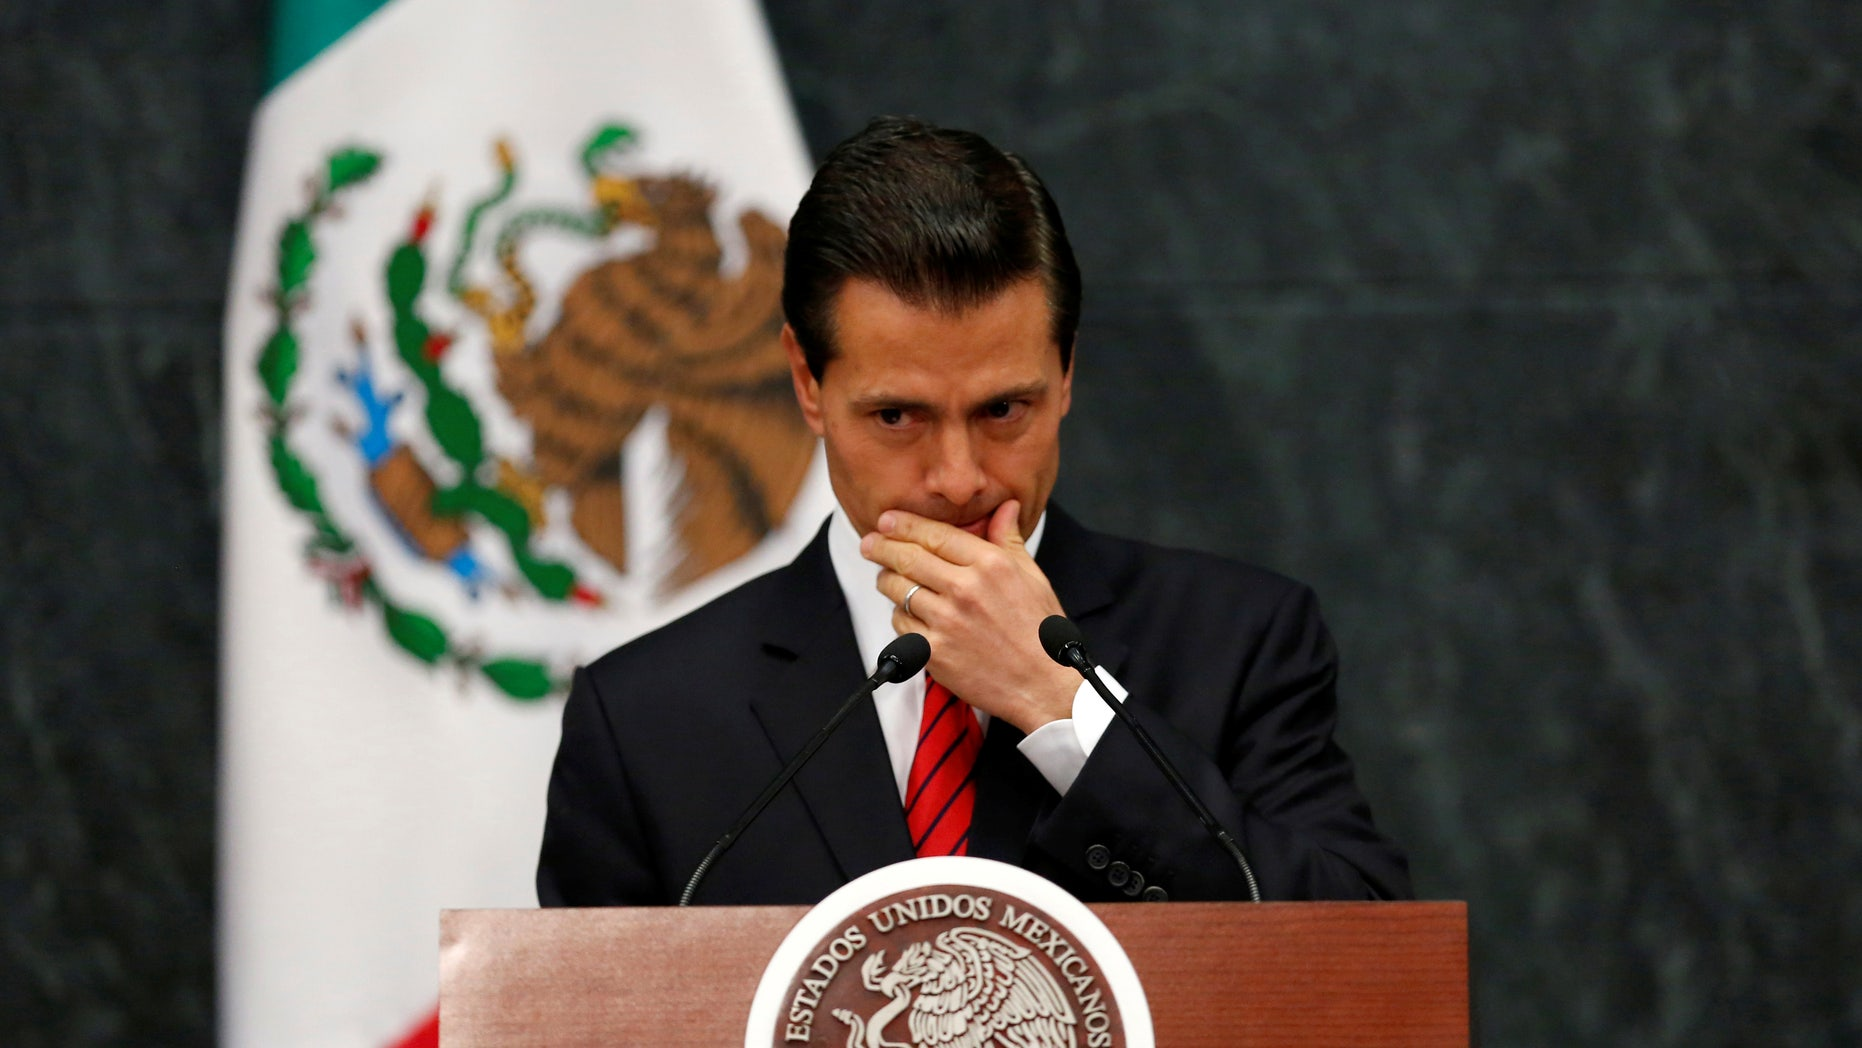 Mexico's President Enrique Pena Nieto on November 9, 2016.